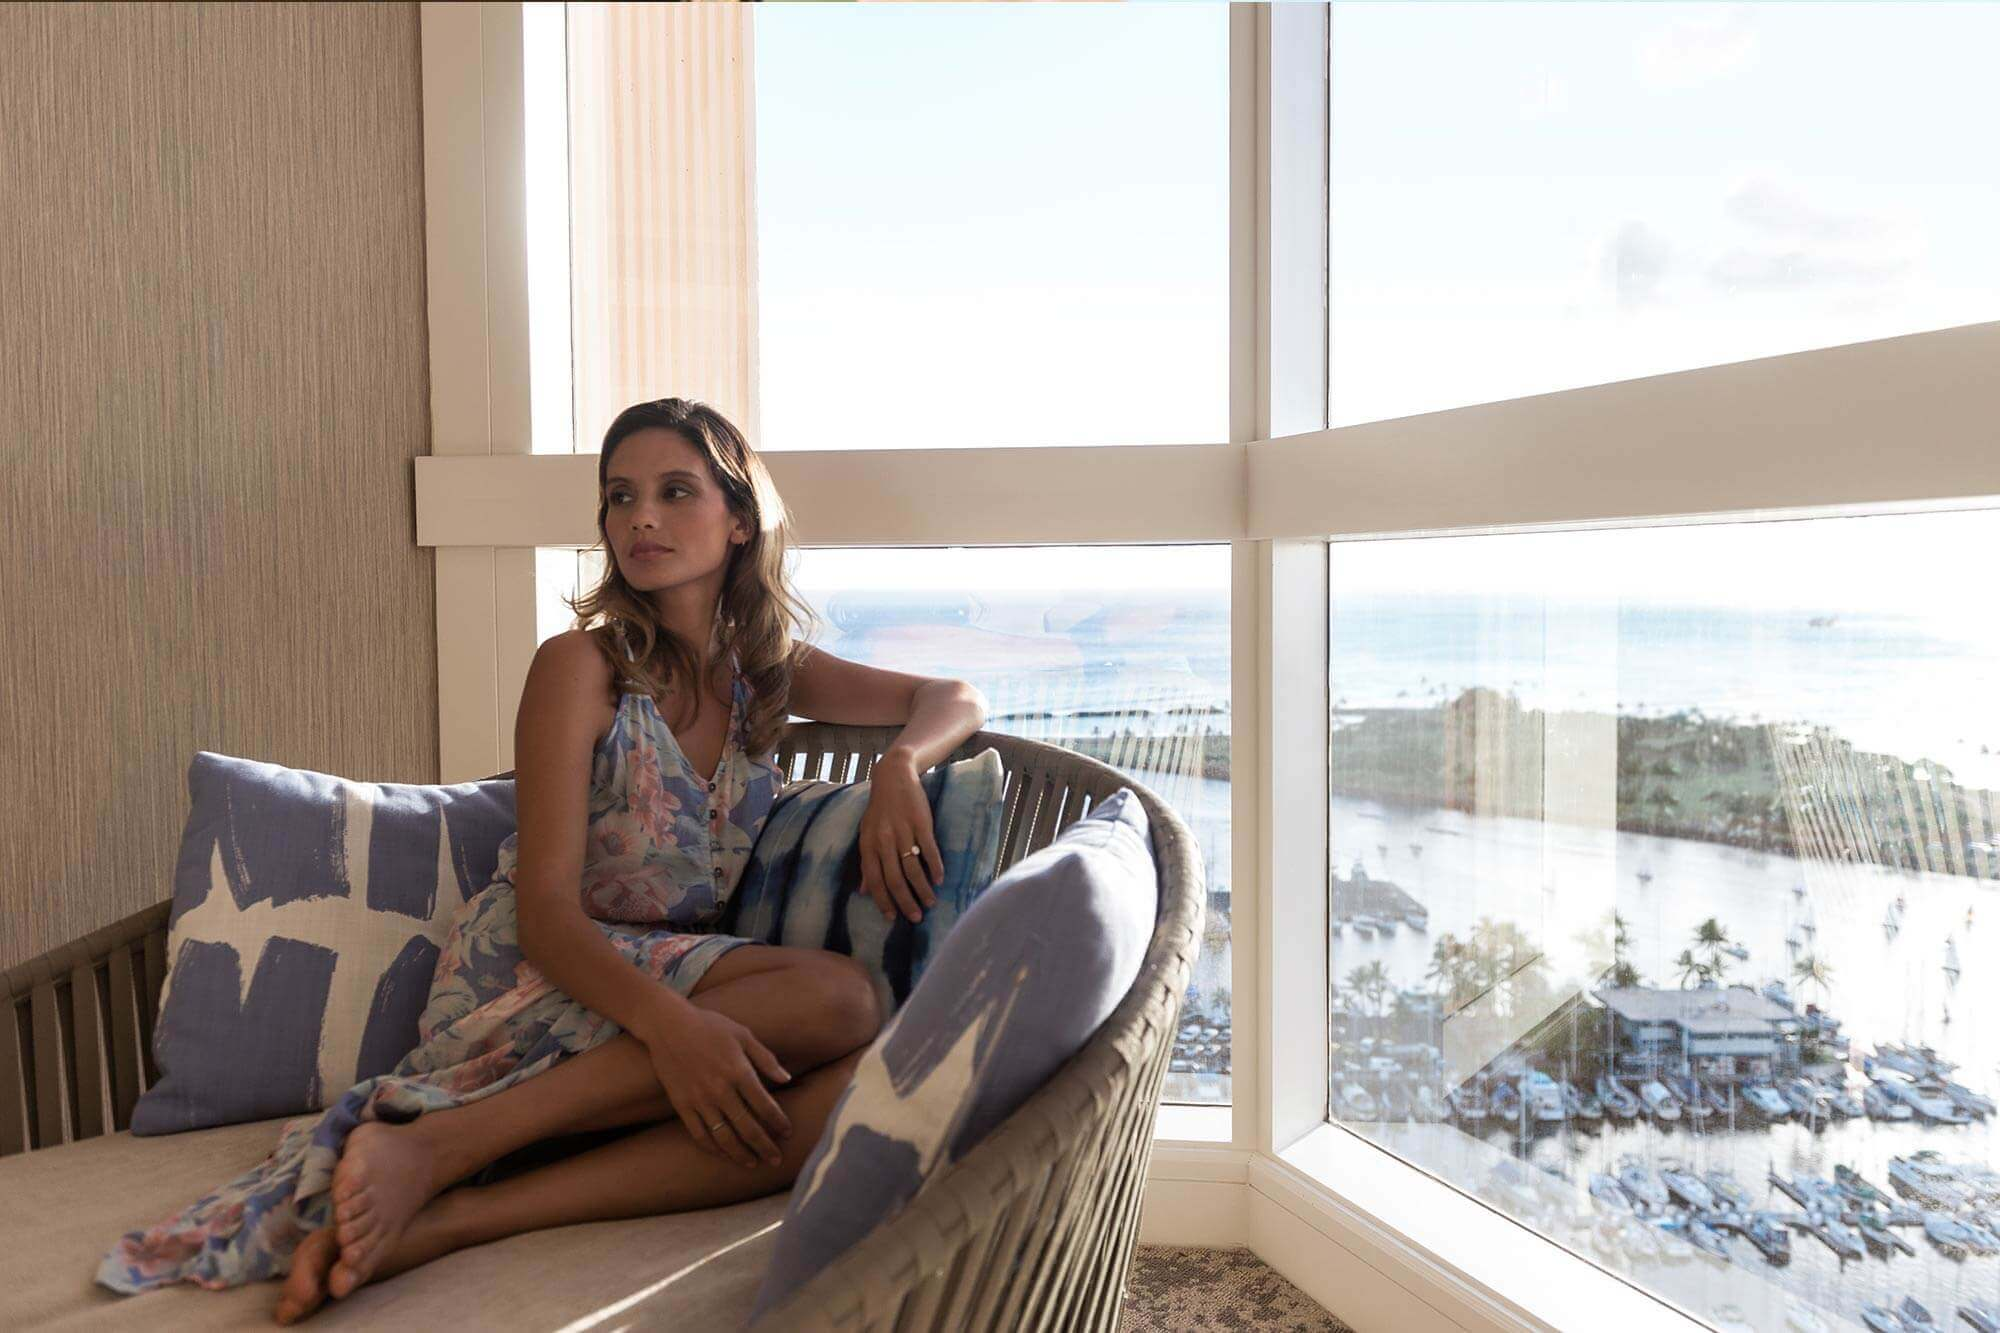 Photo of a Woman Relaxing in a Prince Suite During a Wellness Retreat to Hawaii.